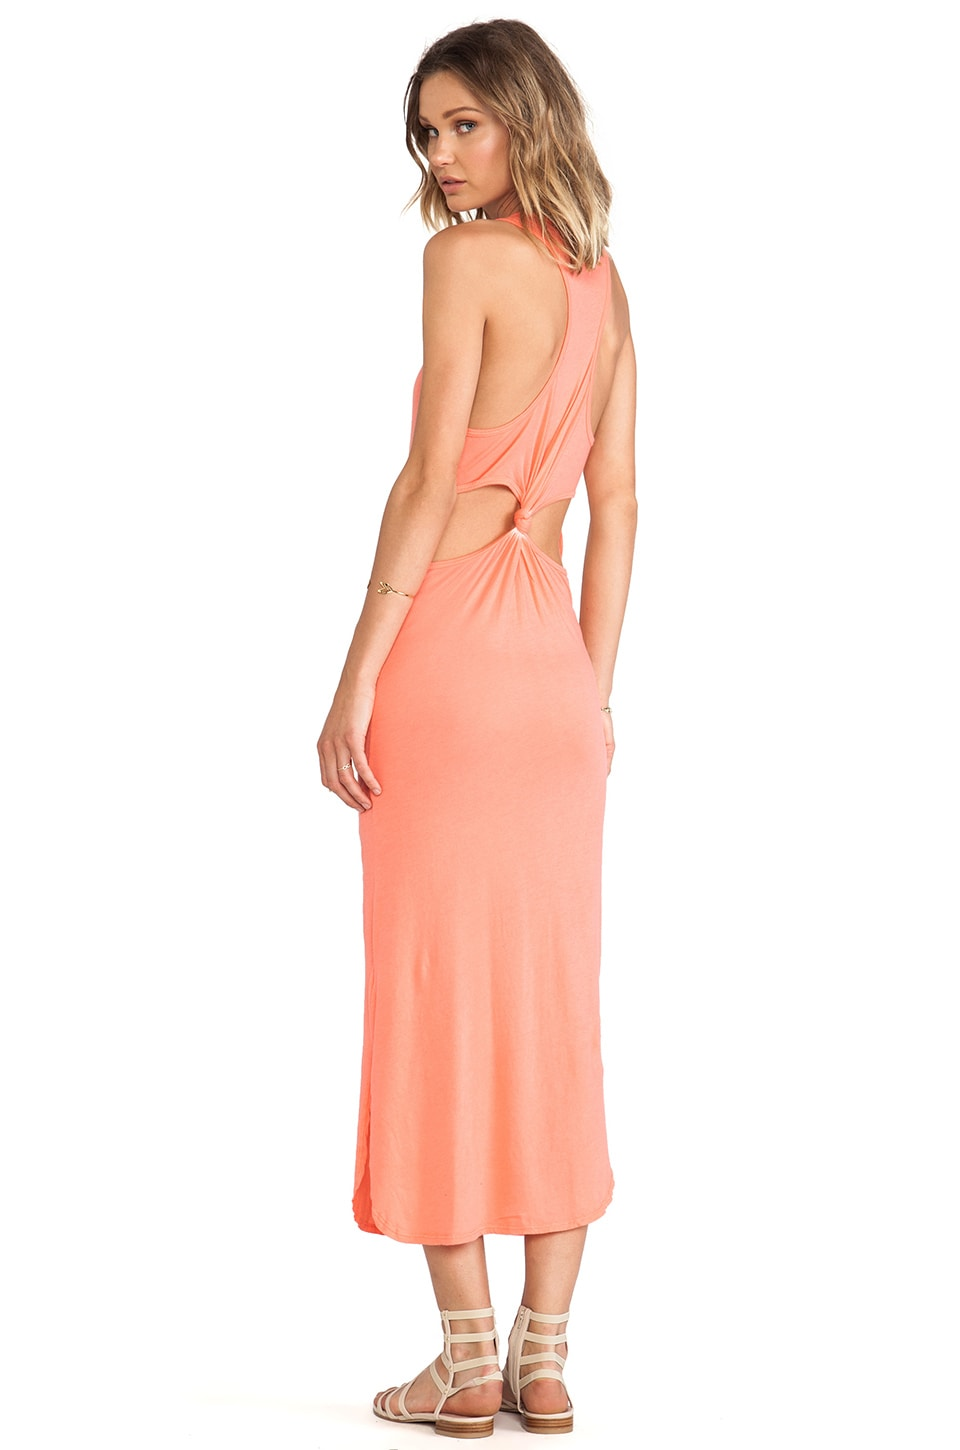 291 Cut-Out Back Knot Maxi Dress in Coral